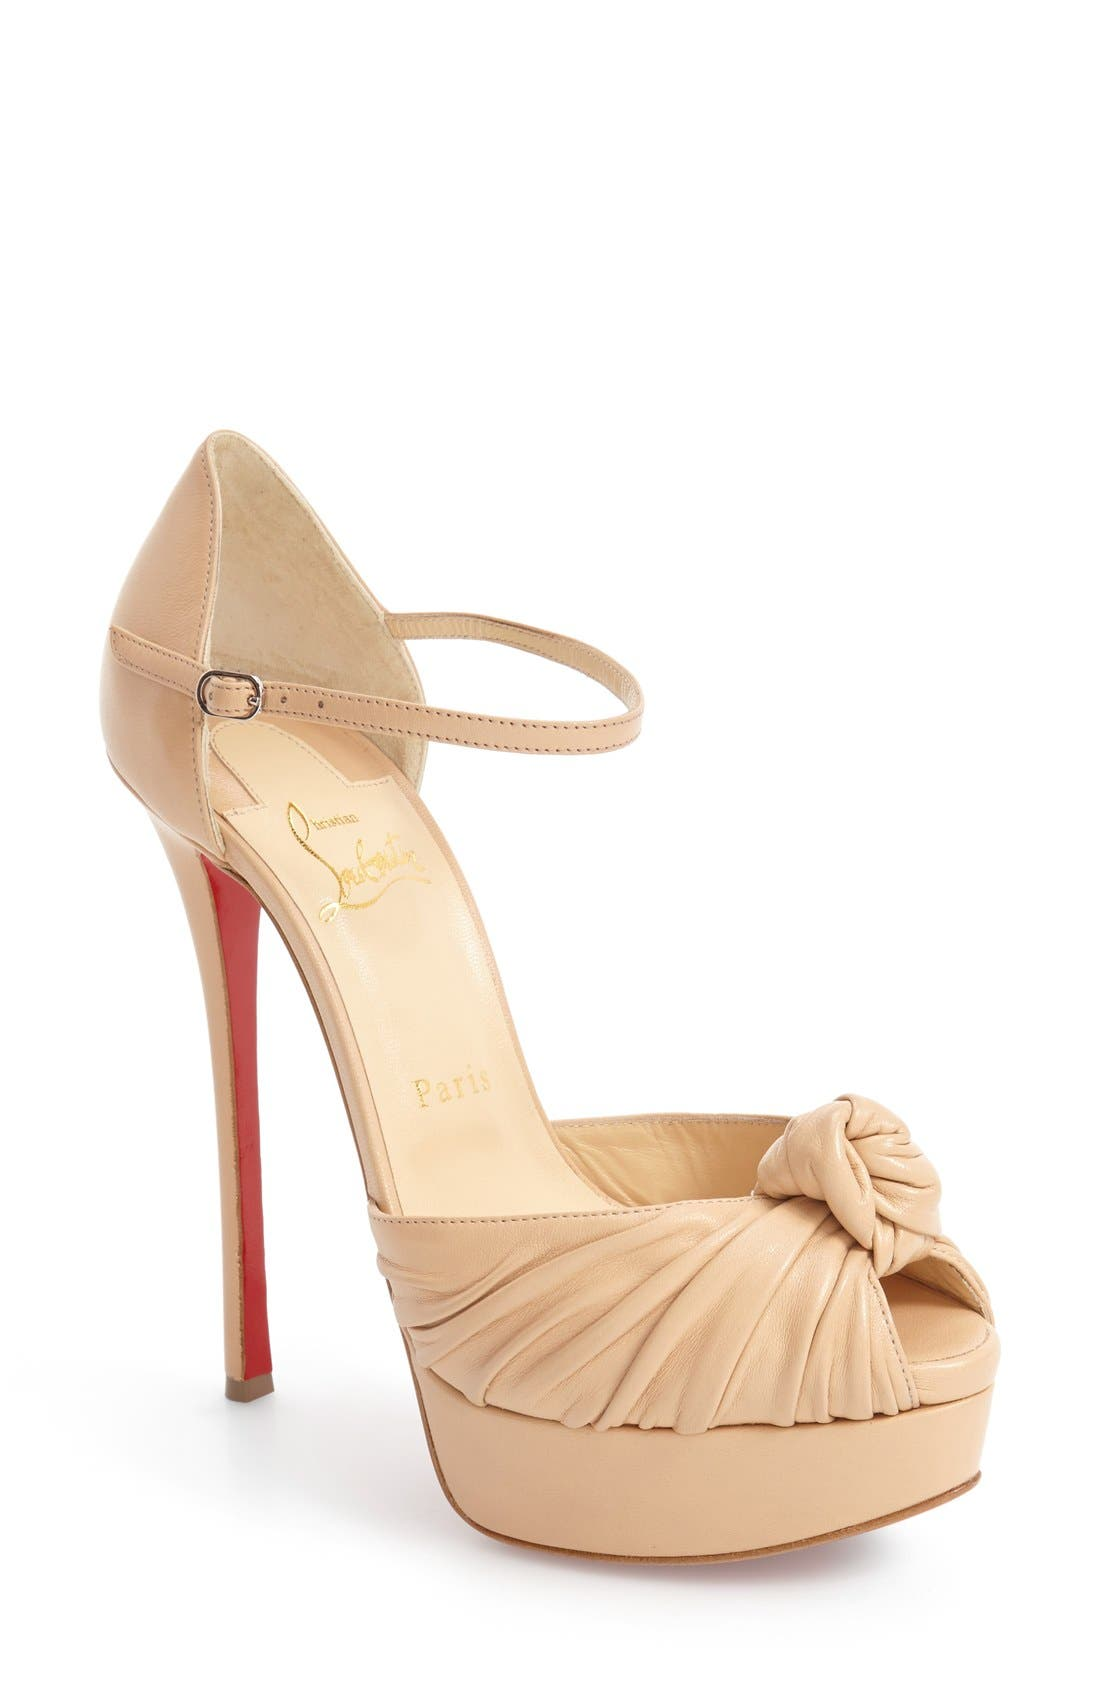 Main Image - Christian Louboutin Marchavekel Knot Sandal